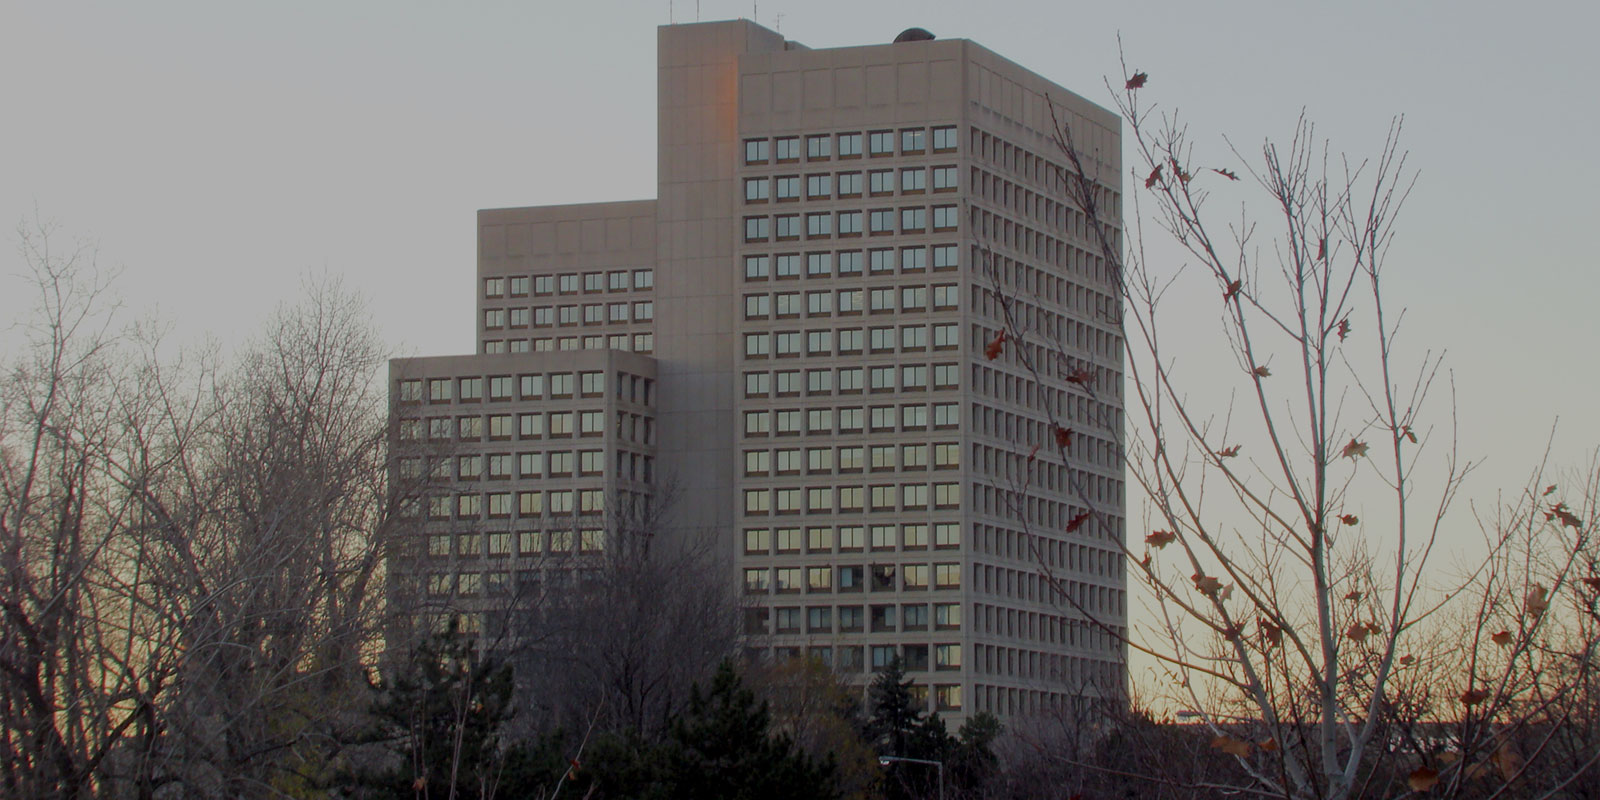 Department of National Defence building in Ottawa